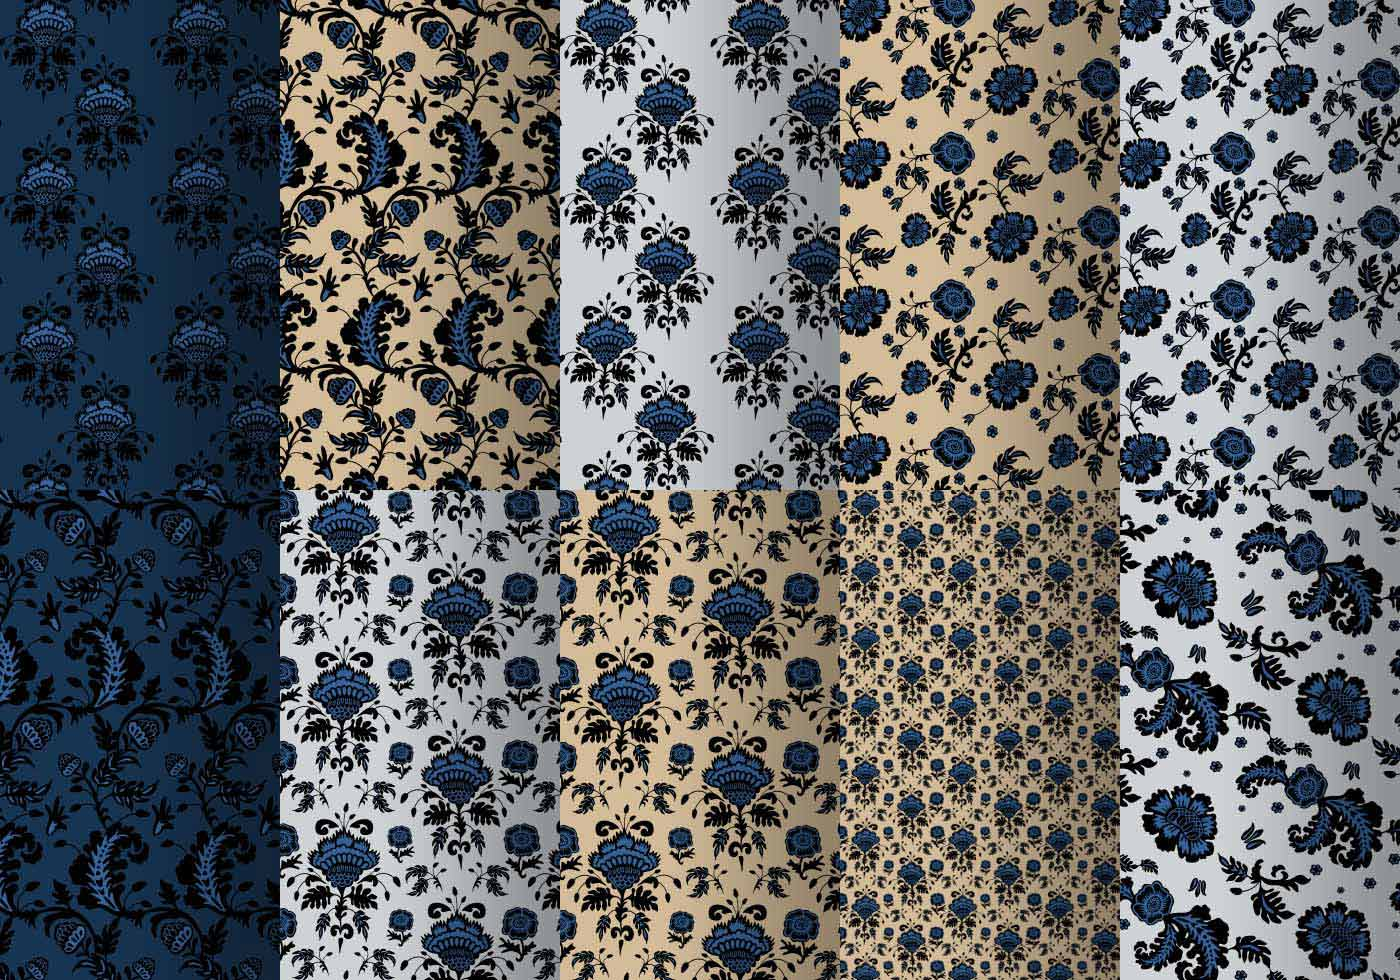 Cute Vintage Floral Wallpaper Blue Baroque Pattern Pack Free Photoshop Brushes At